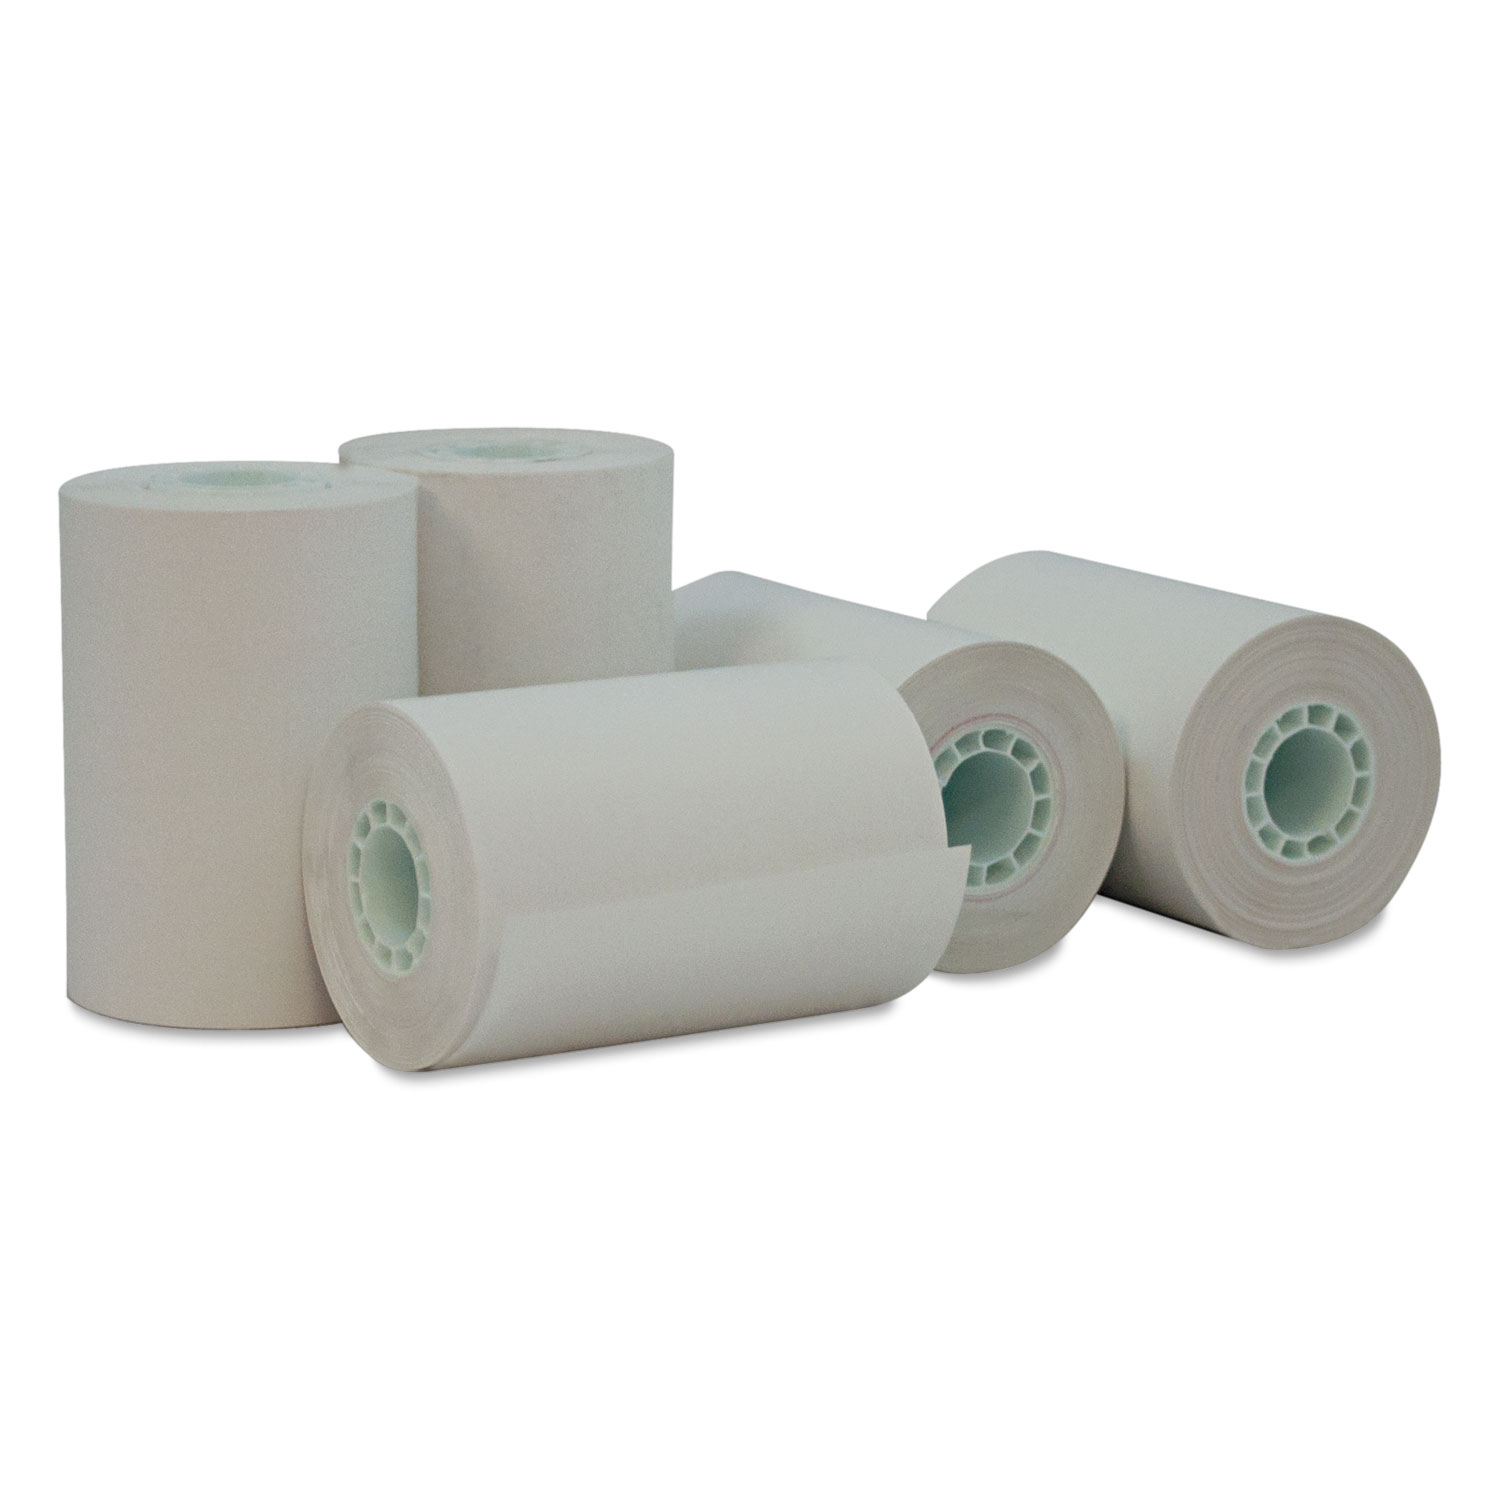 "Single-Ply Thermal Paper Rolls, 2 1/4"" x 55 ft, White, 50/Carton"